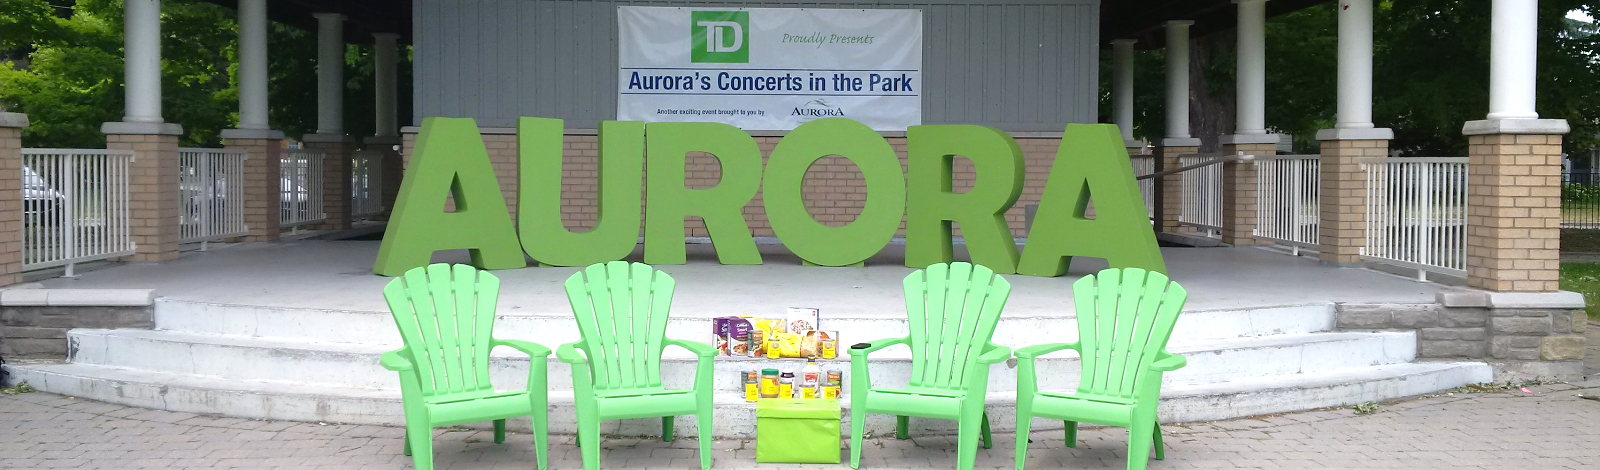 Concerts in the park stage with AURORA letters and green chairs